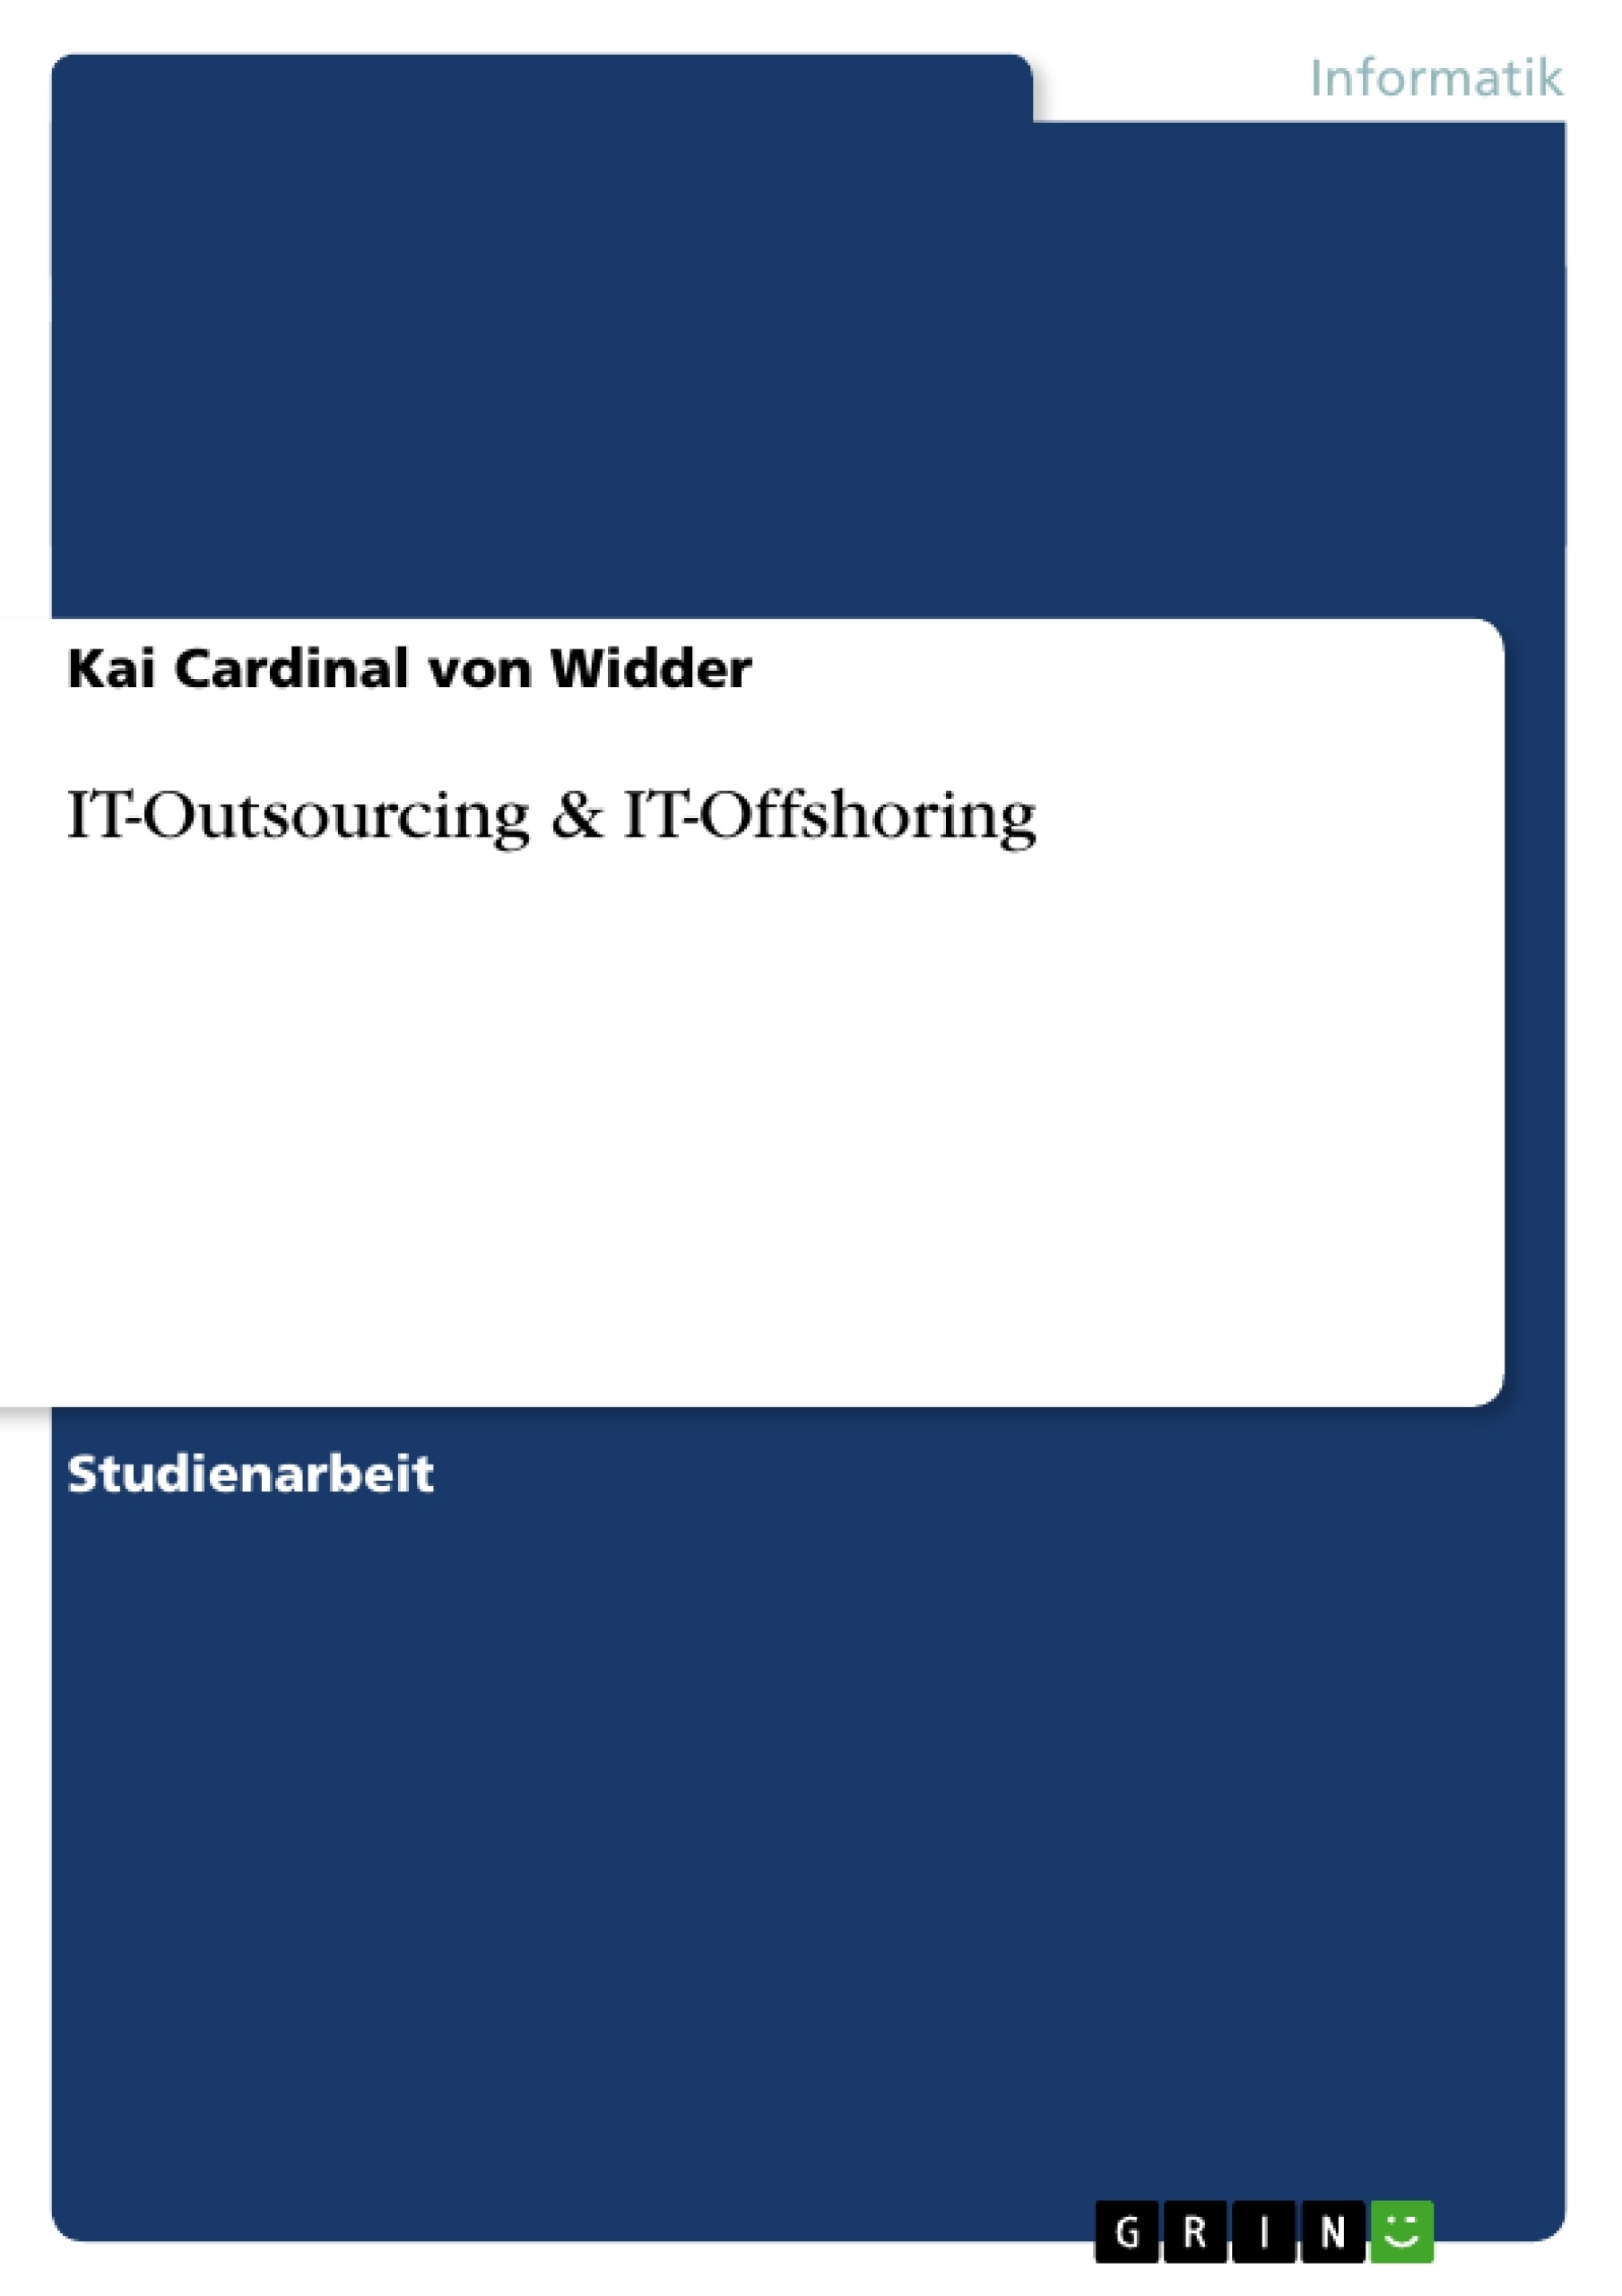 Titel: IT-Outsourcing & IT-Offshoring